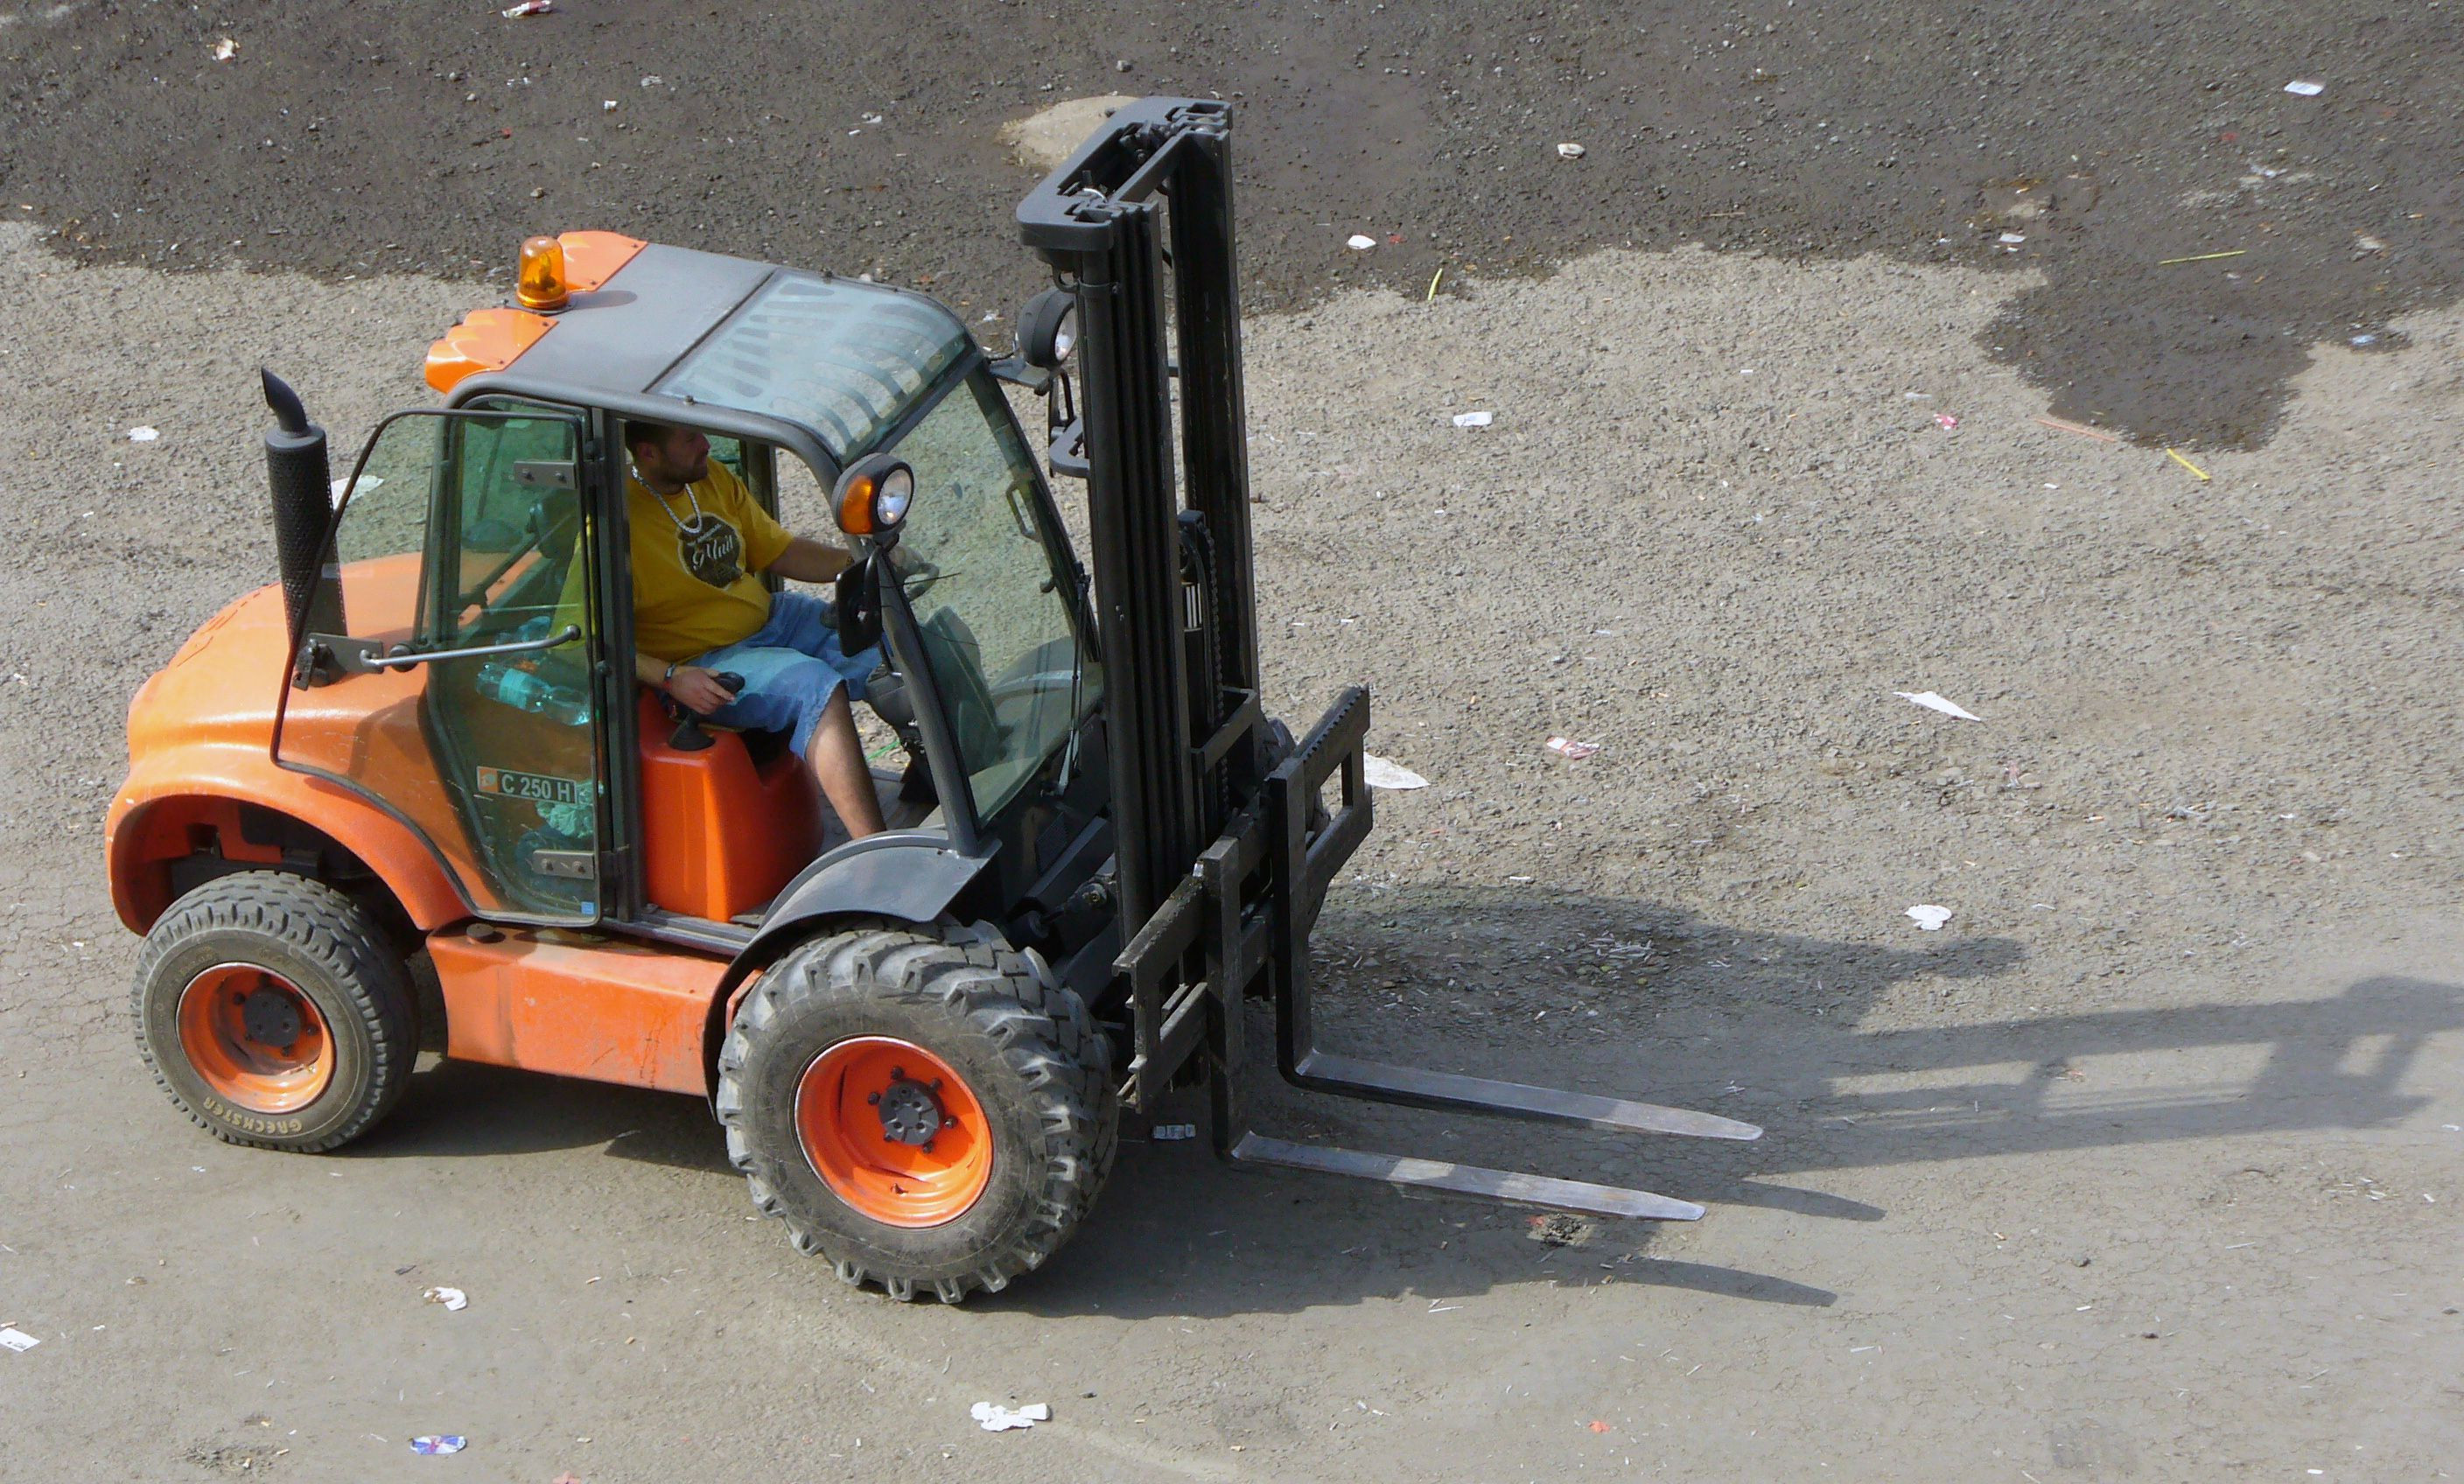 LICENCE TO OPERATE A FORKLIFT 1 - 3 DAYS